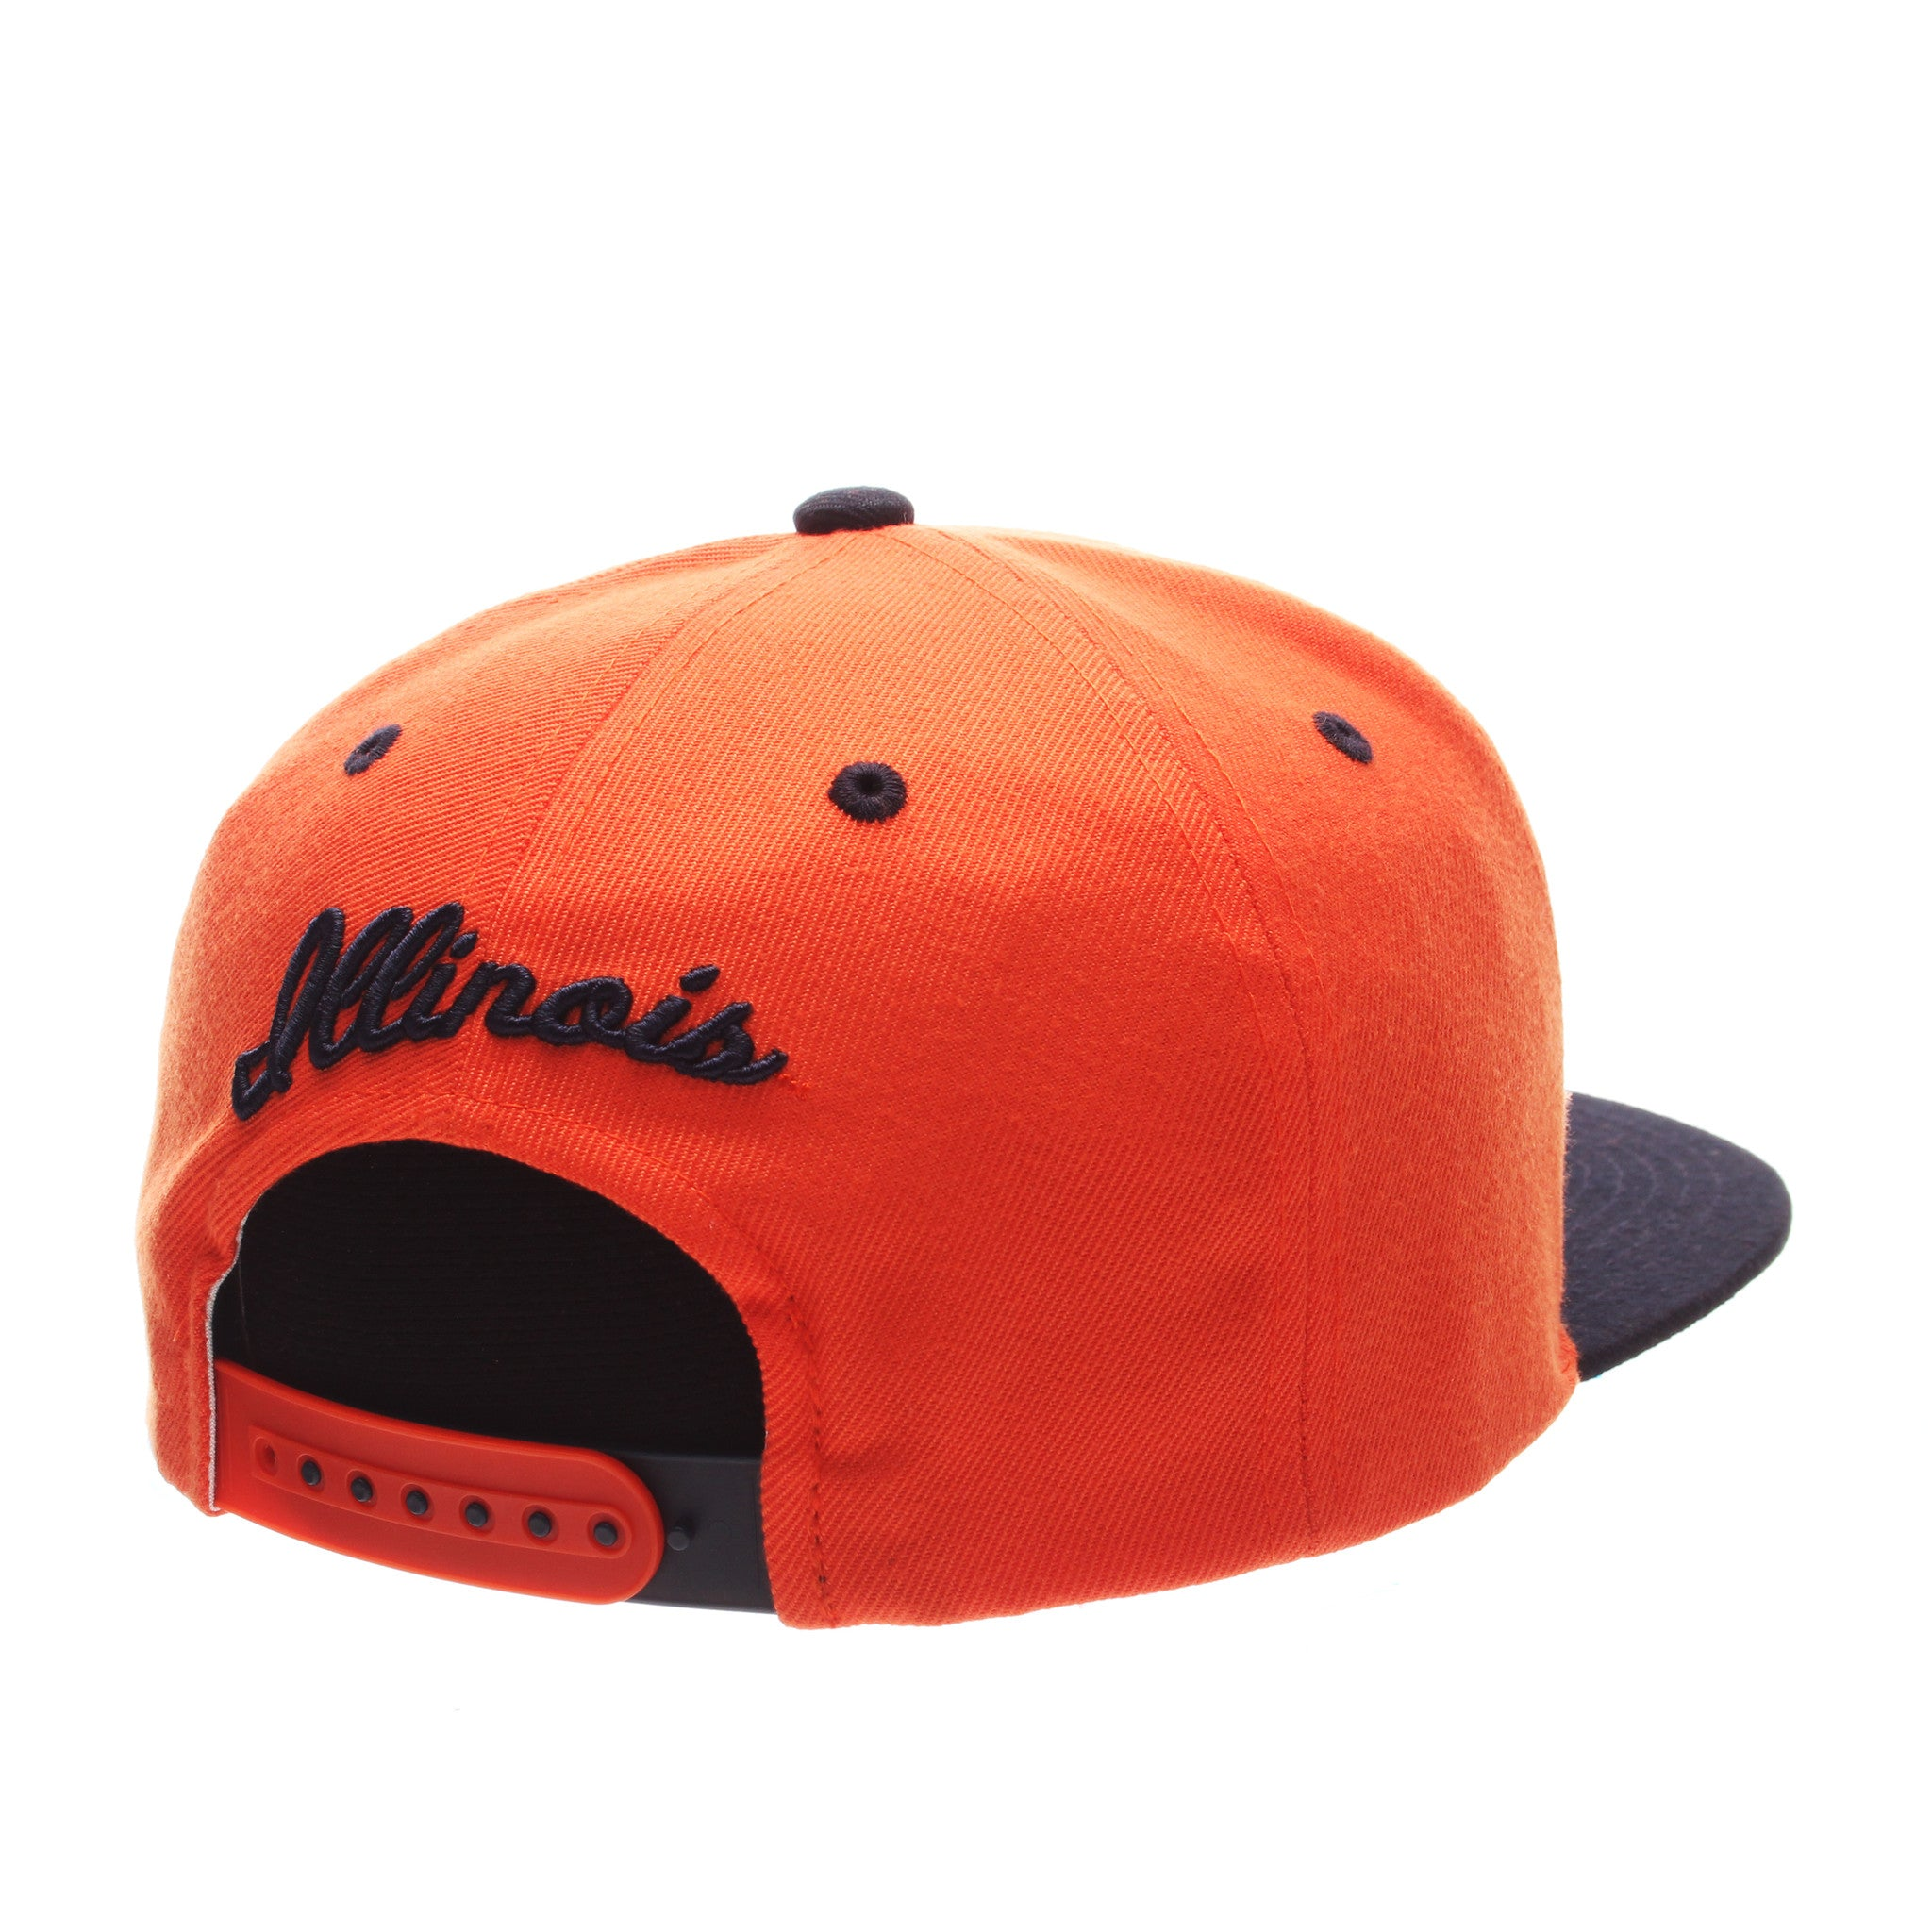 Illinois (Urbana-Champaign) Z11 32/5 (High) (I) Orange Zwool Adjustable hats by Zephyr